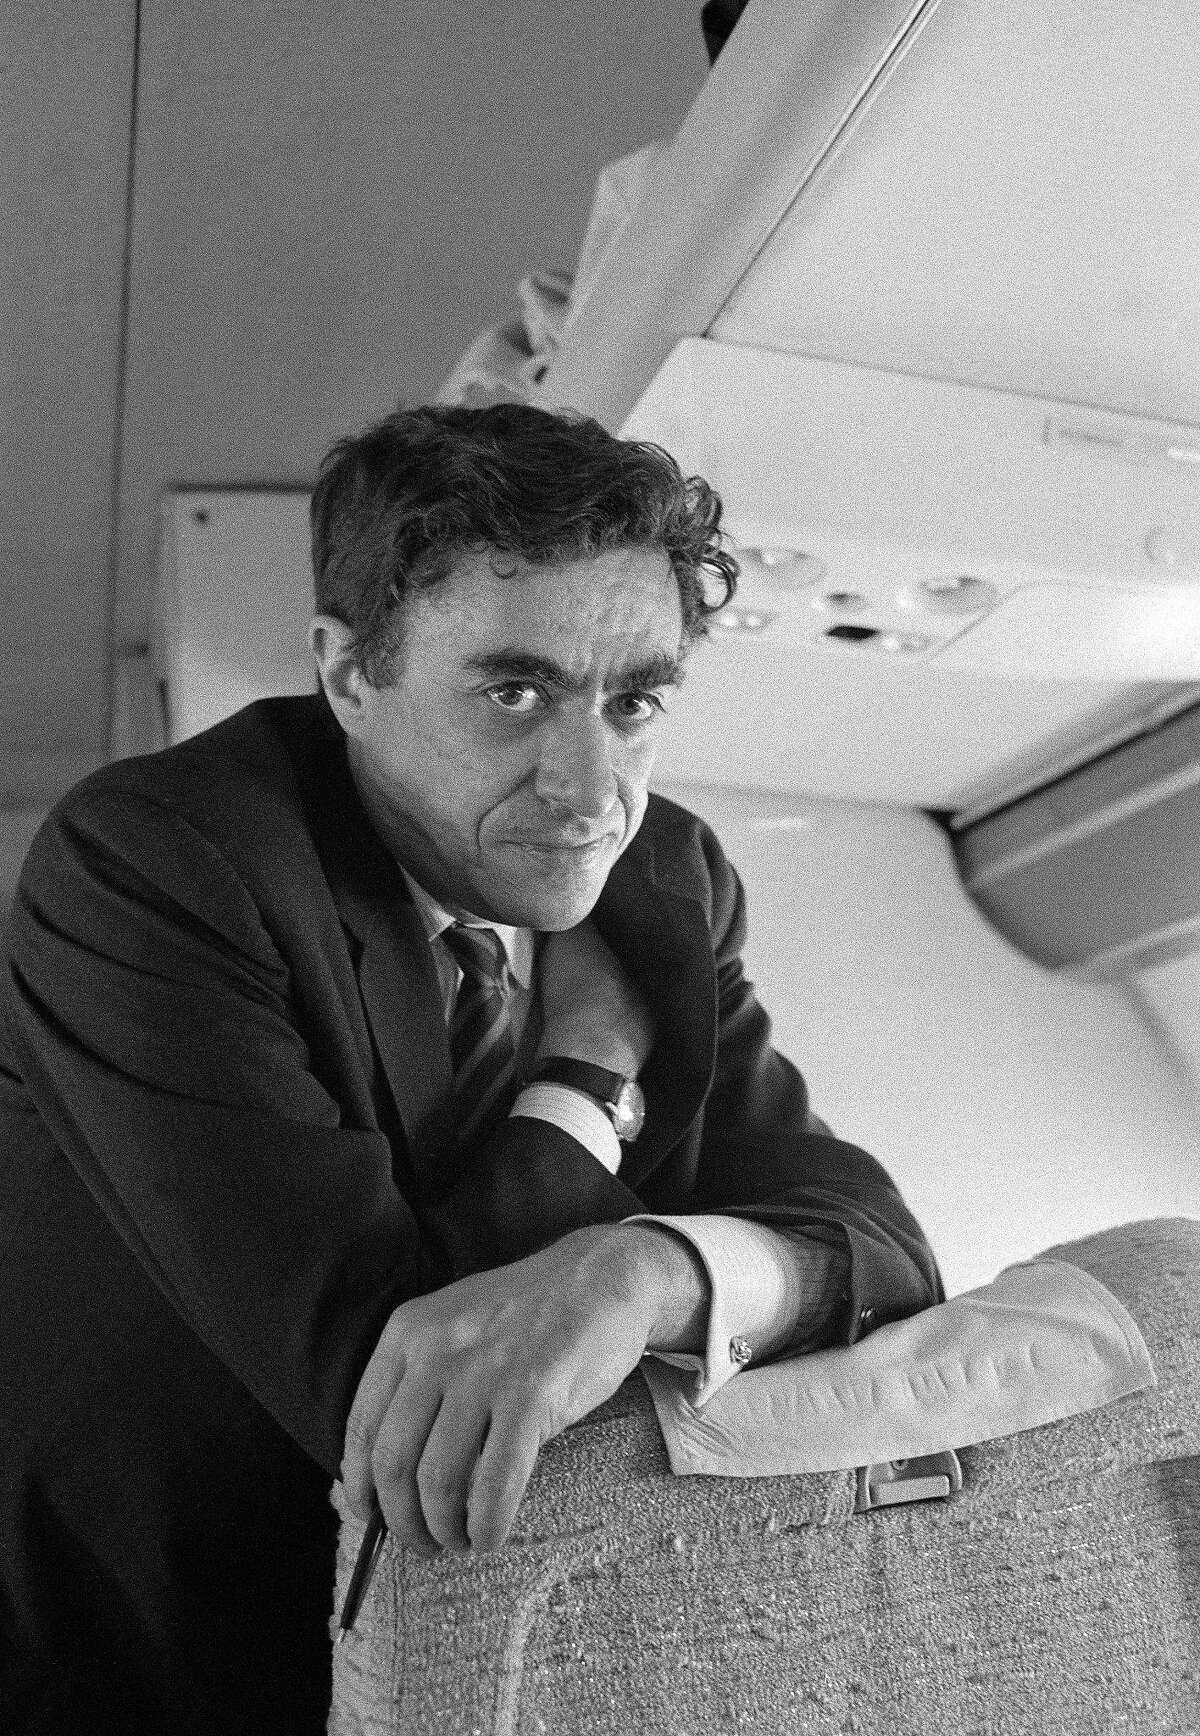 FILE -- Richard Goodwin in 1968. Goodwin, a senior adviser and speechwriter for Presidents John Kennedy and Lyndon Johnson whose later work as an author, journalist and political consultant reflected his unswerving liberal outlook, died on Sunday, May 20, 2018, at his home in Concord, Mass. He was 86. (George Tames/The New York Times)